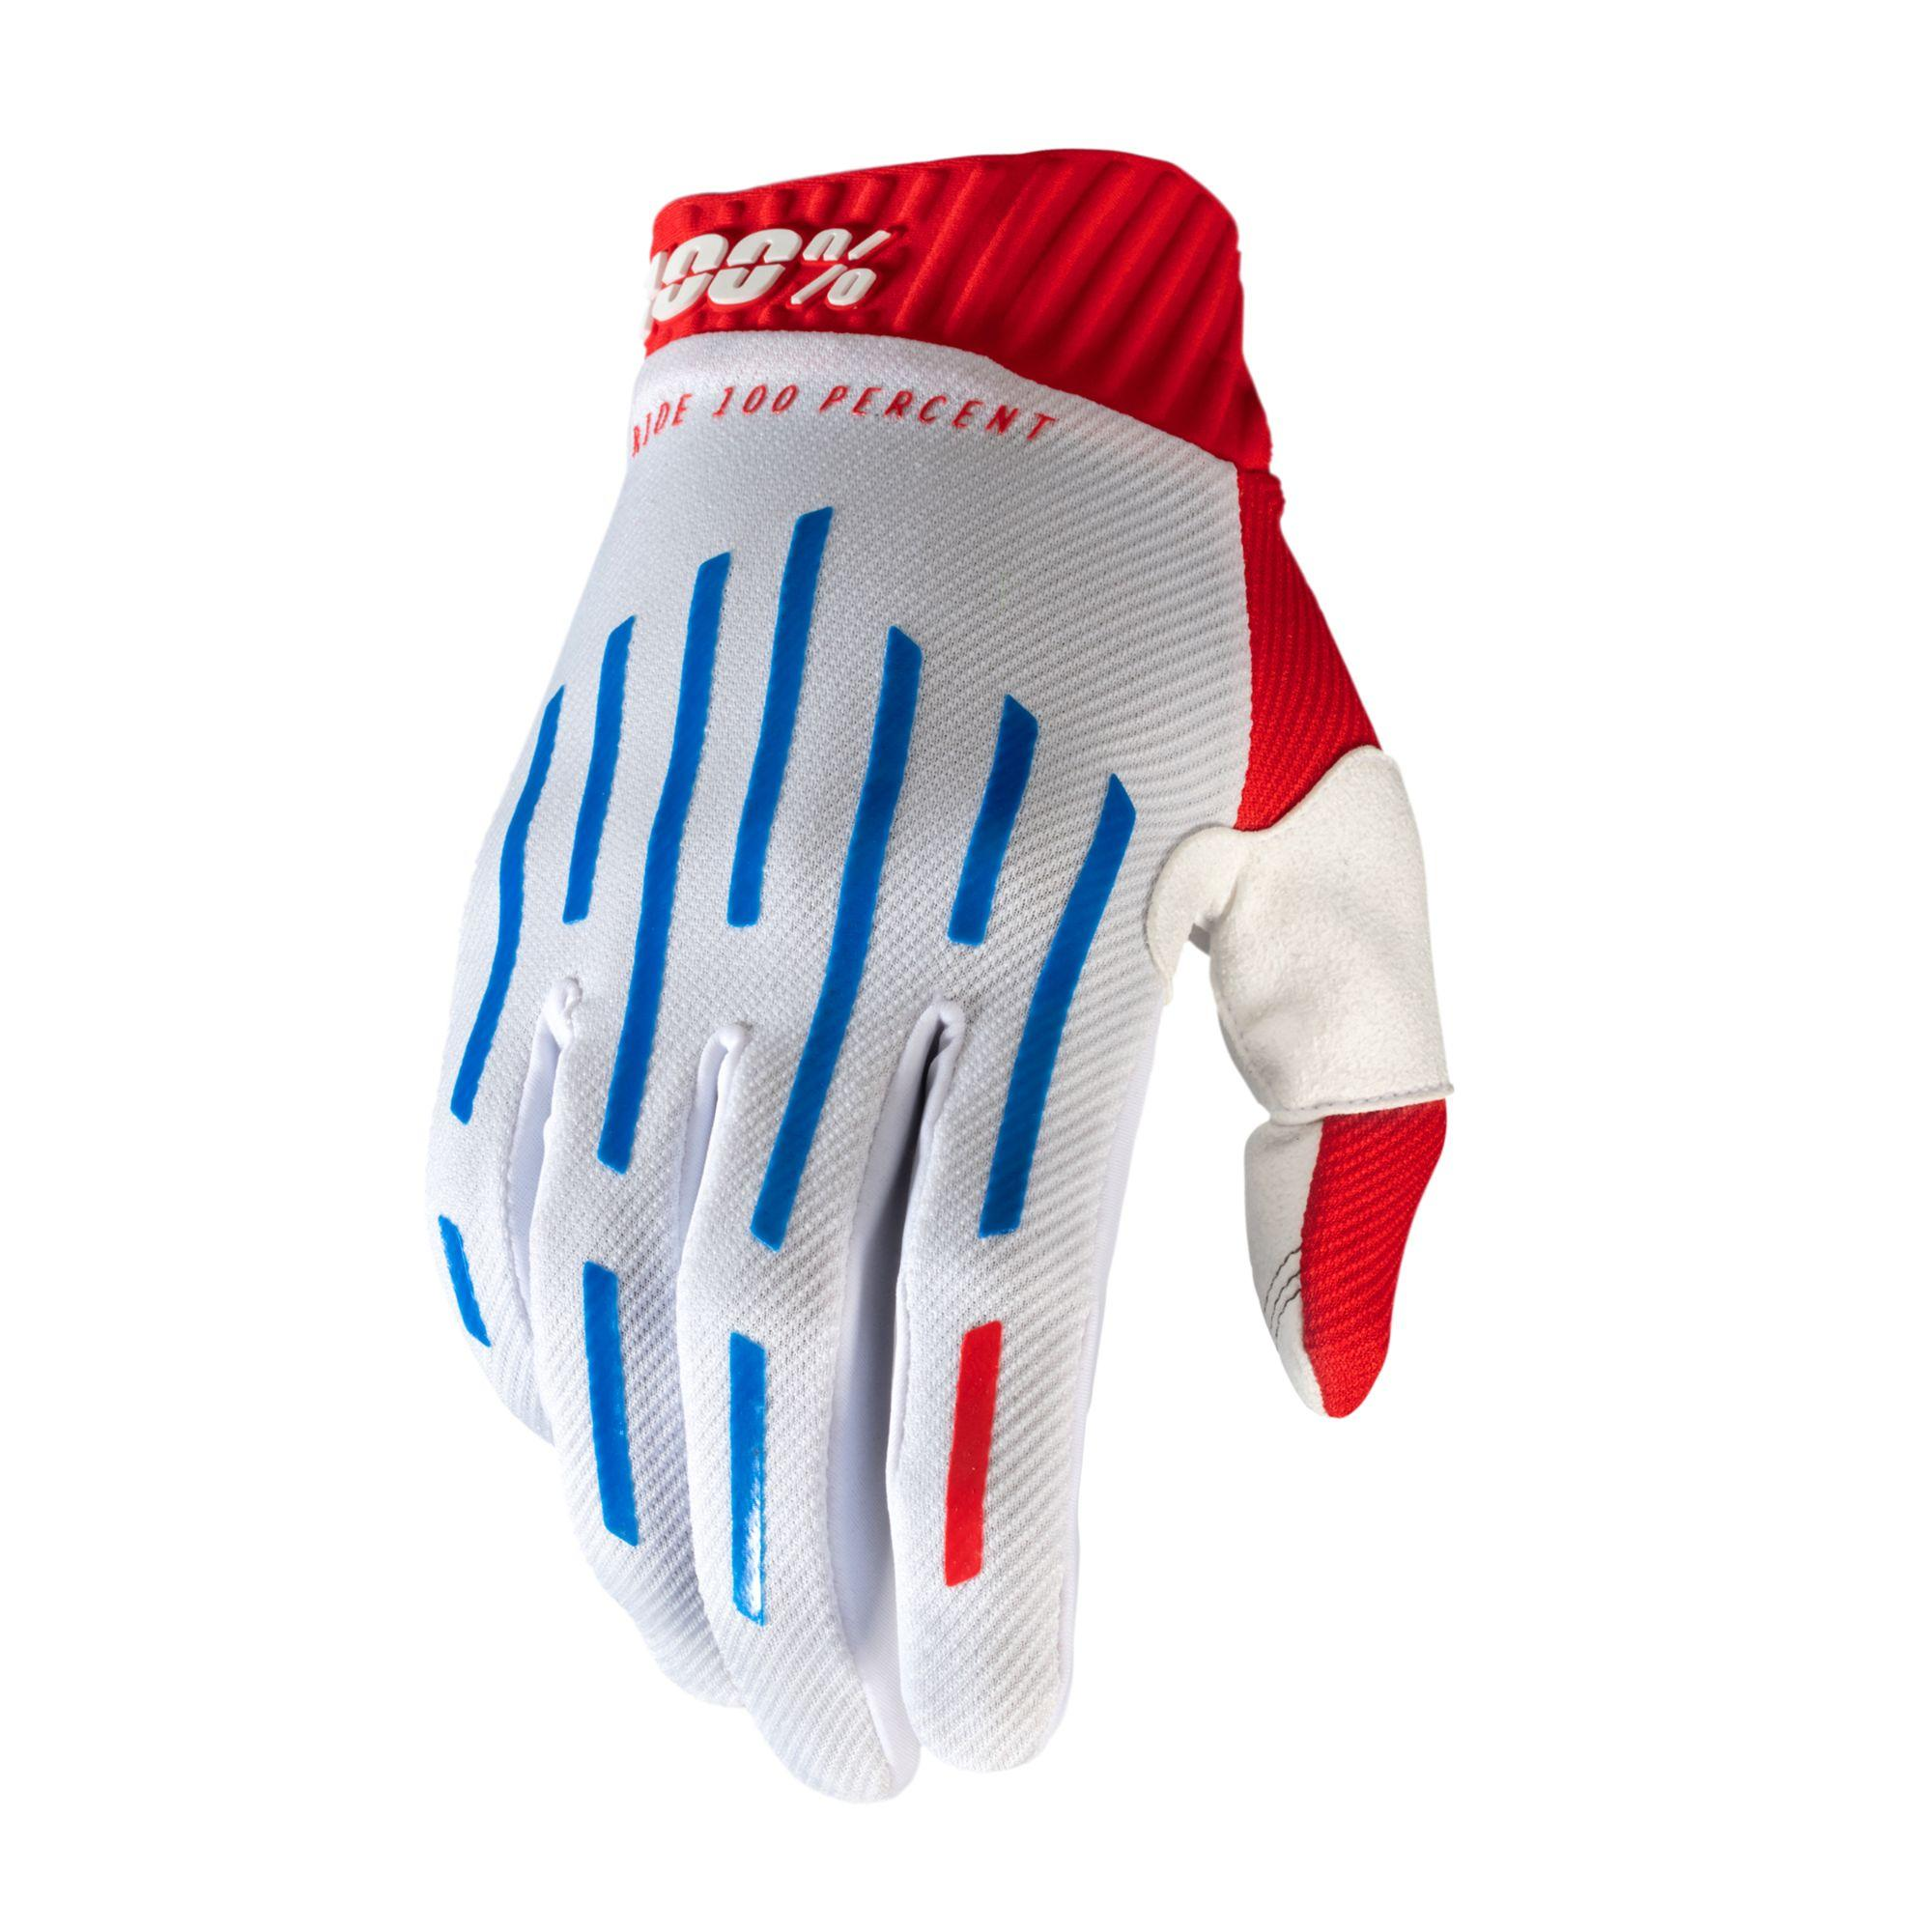 RIDEFIT Glove Red/White/Blue